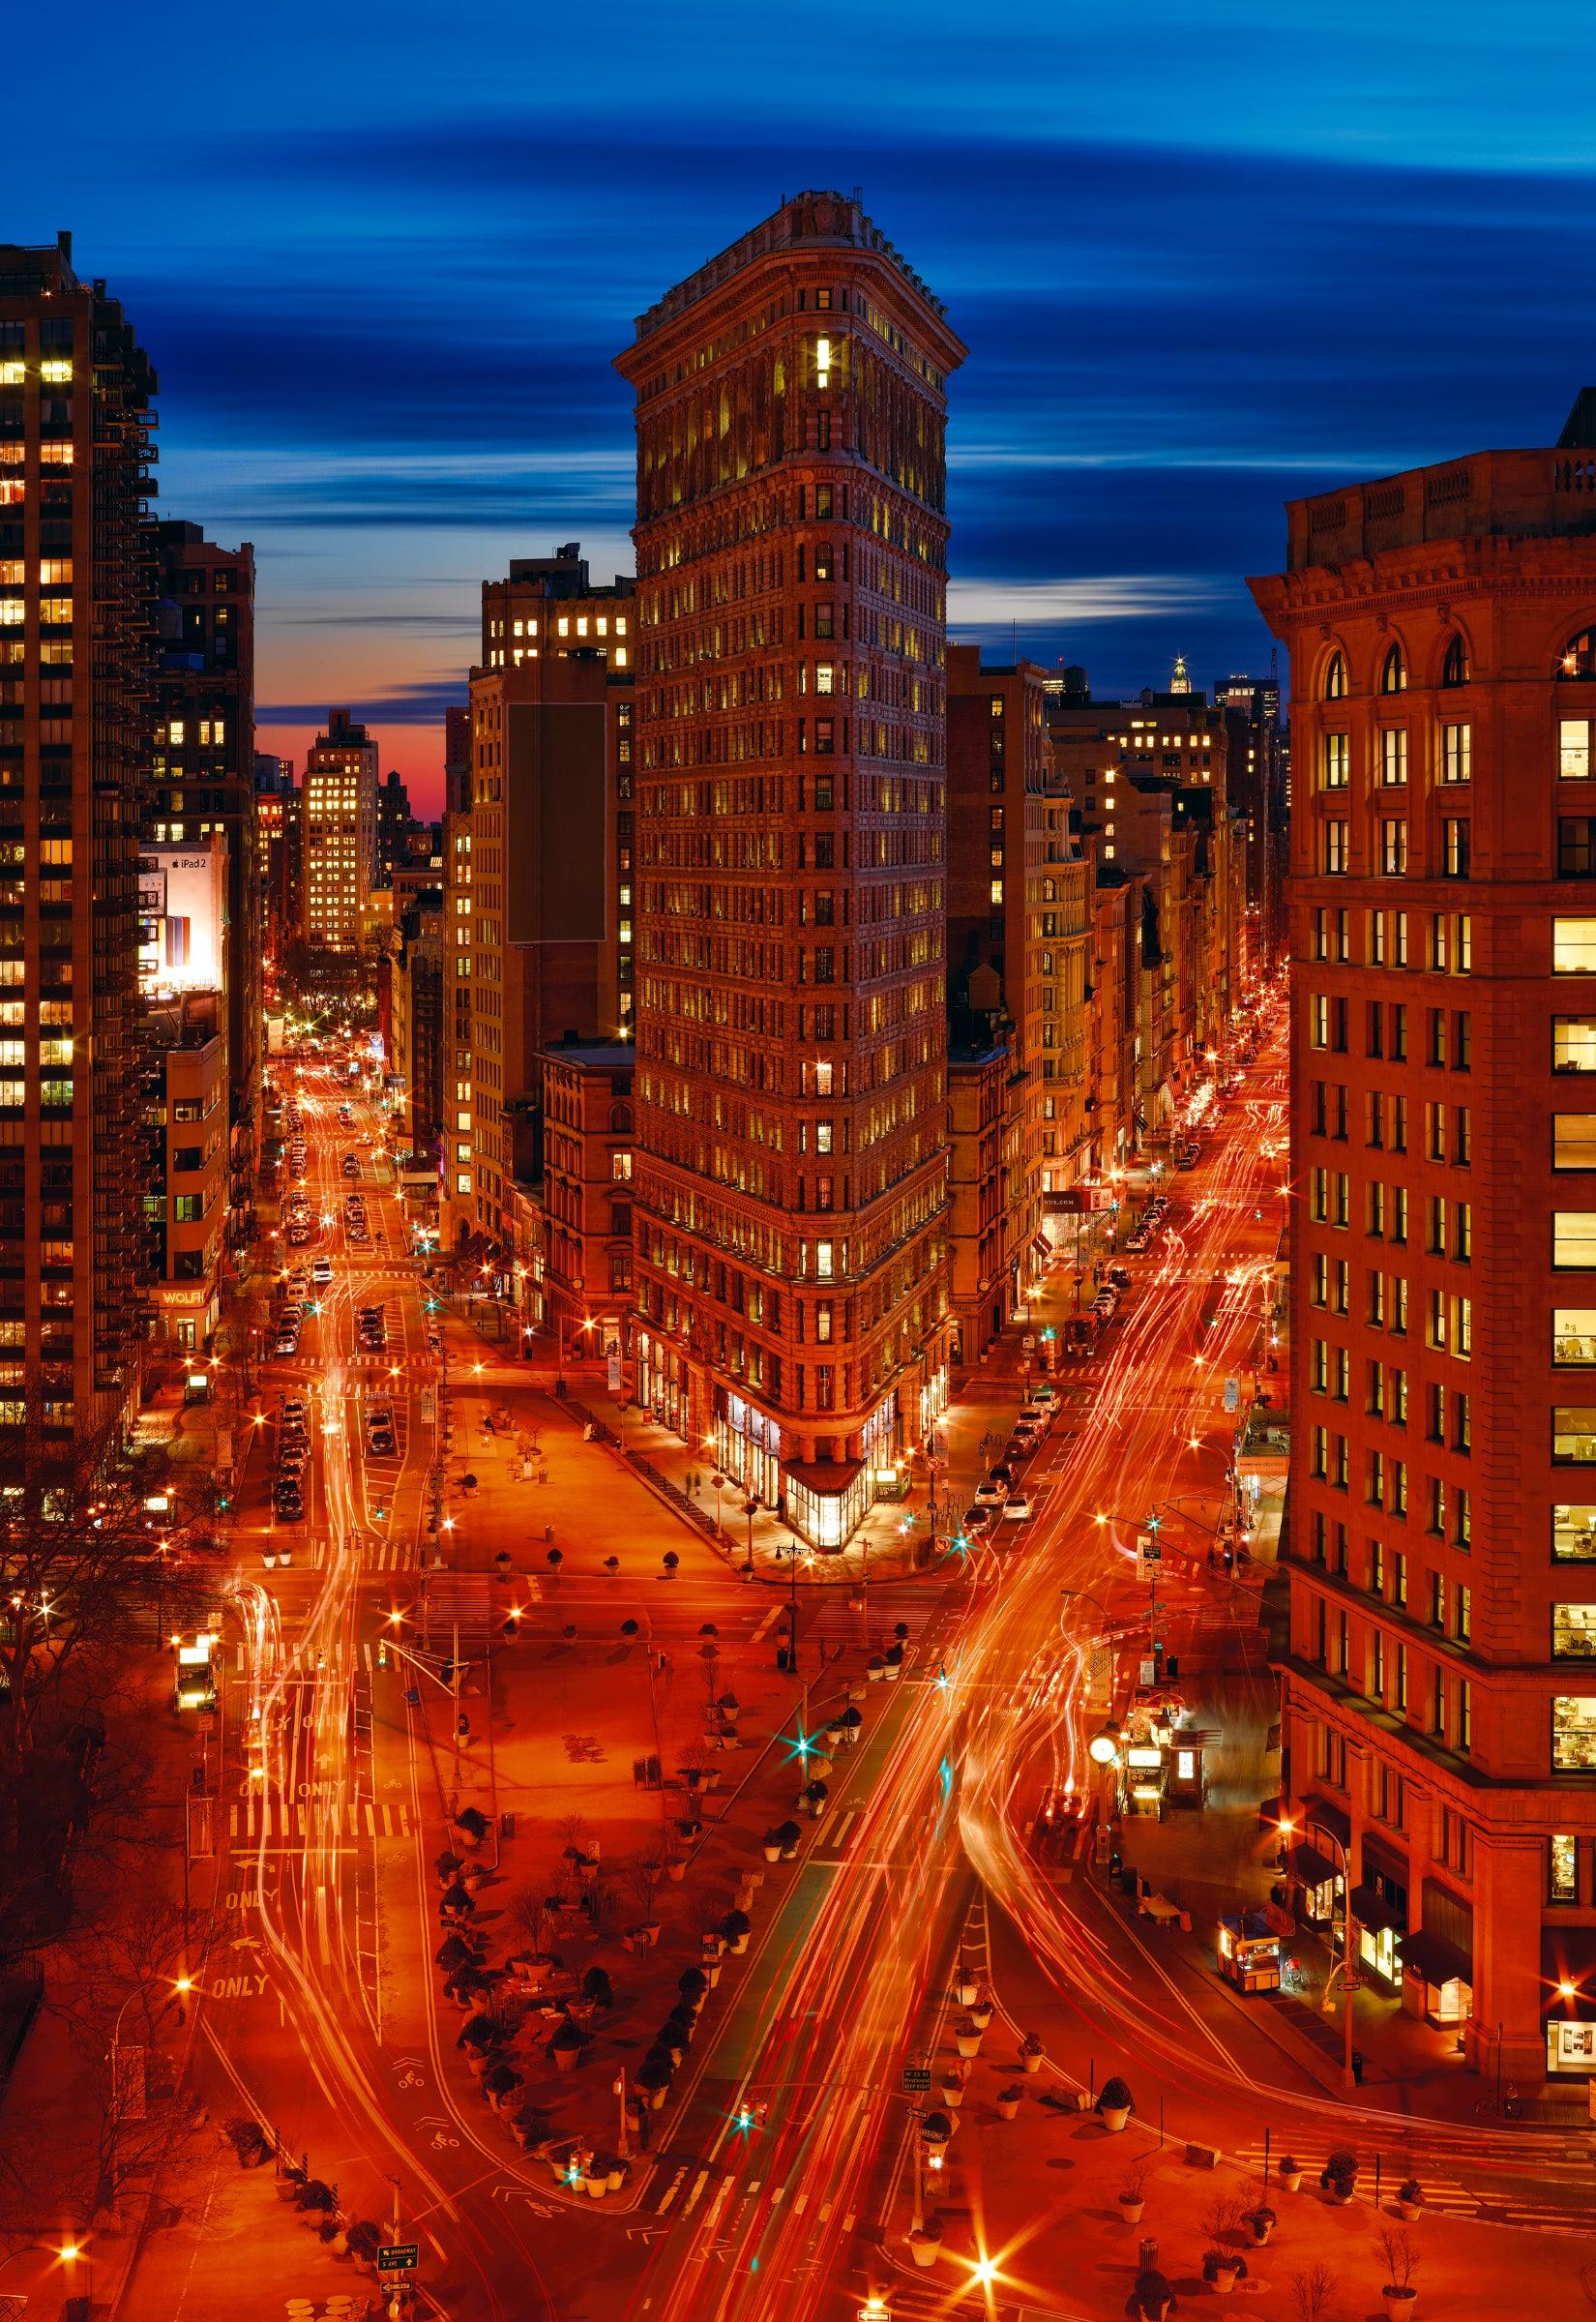 Flat Iron building at night and the glowing lights of moving cars in the street below in New York City